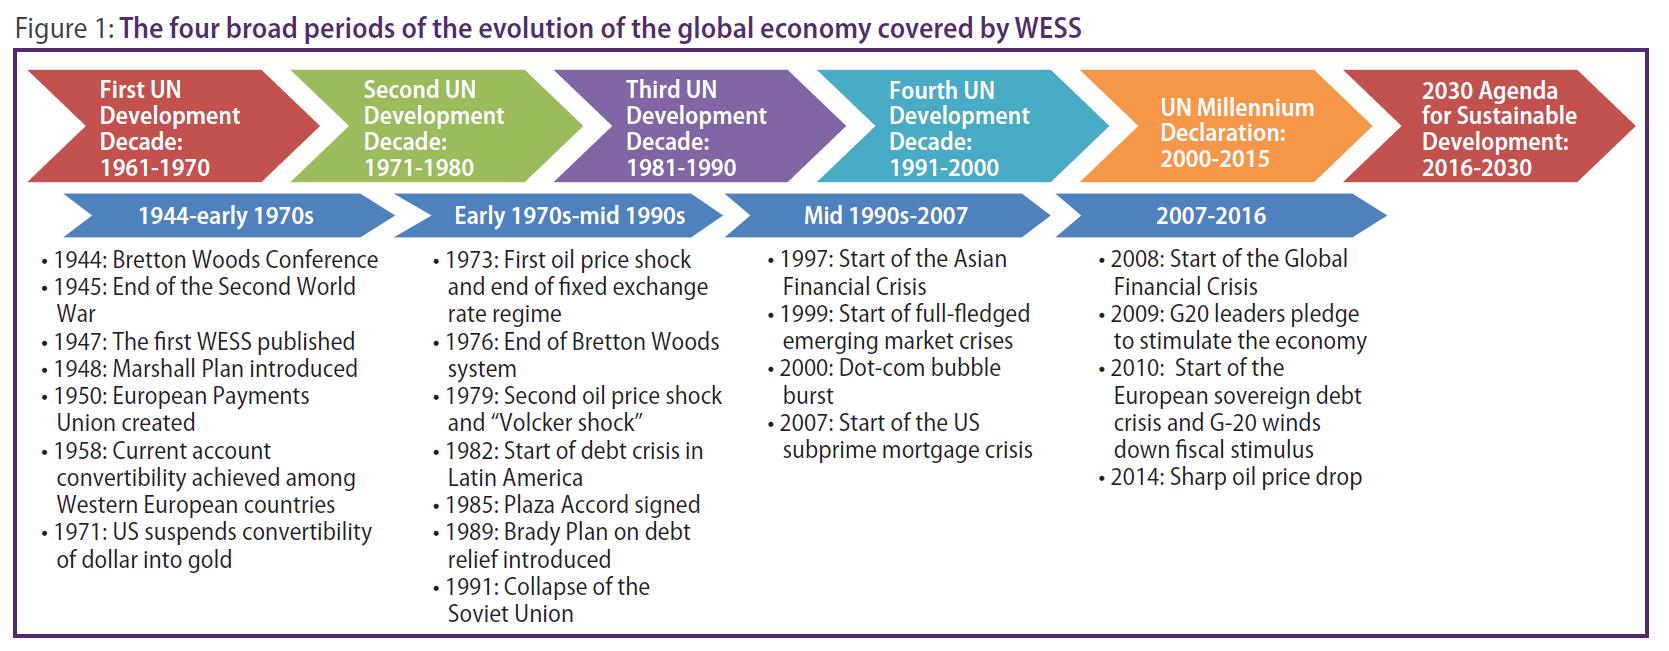 Reflecting on the World Economic and Social Survey's 70 years of